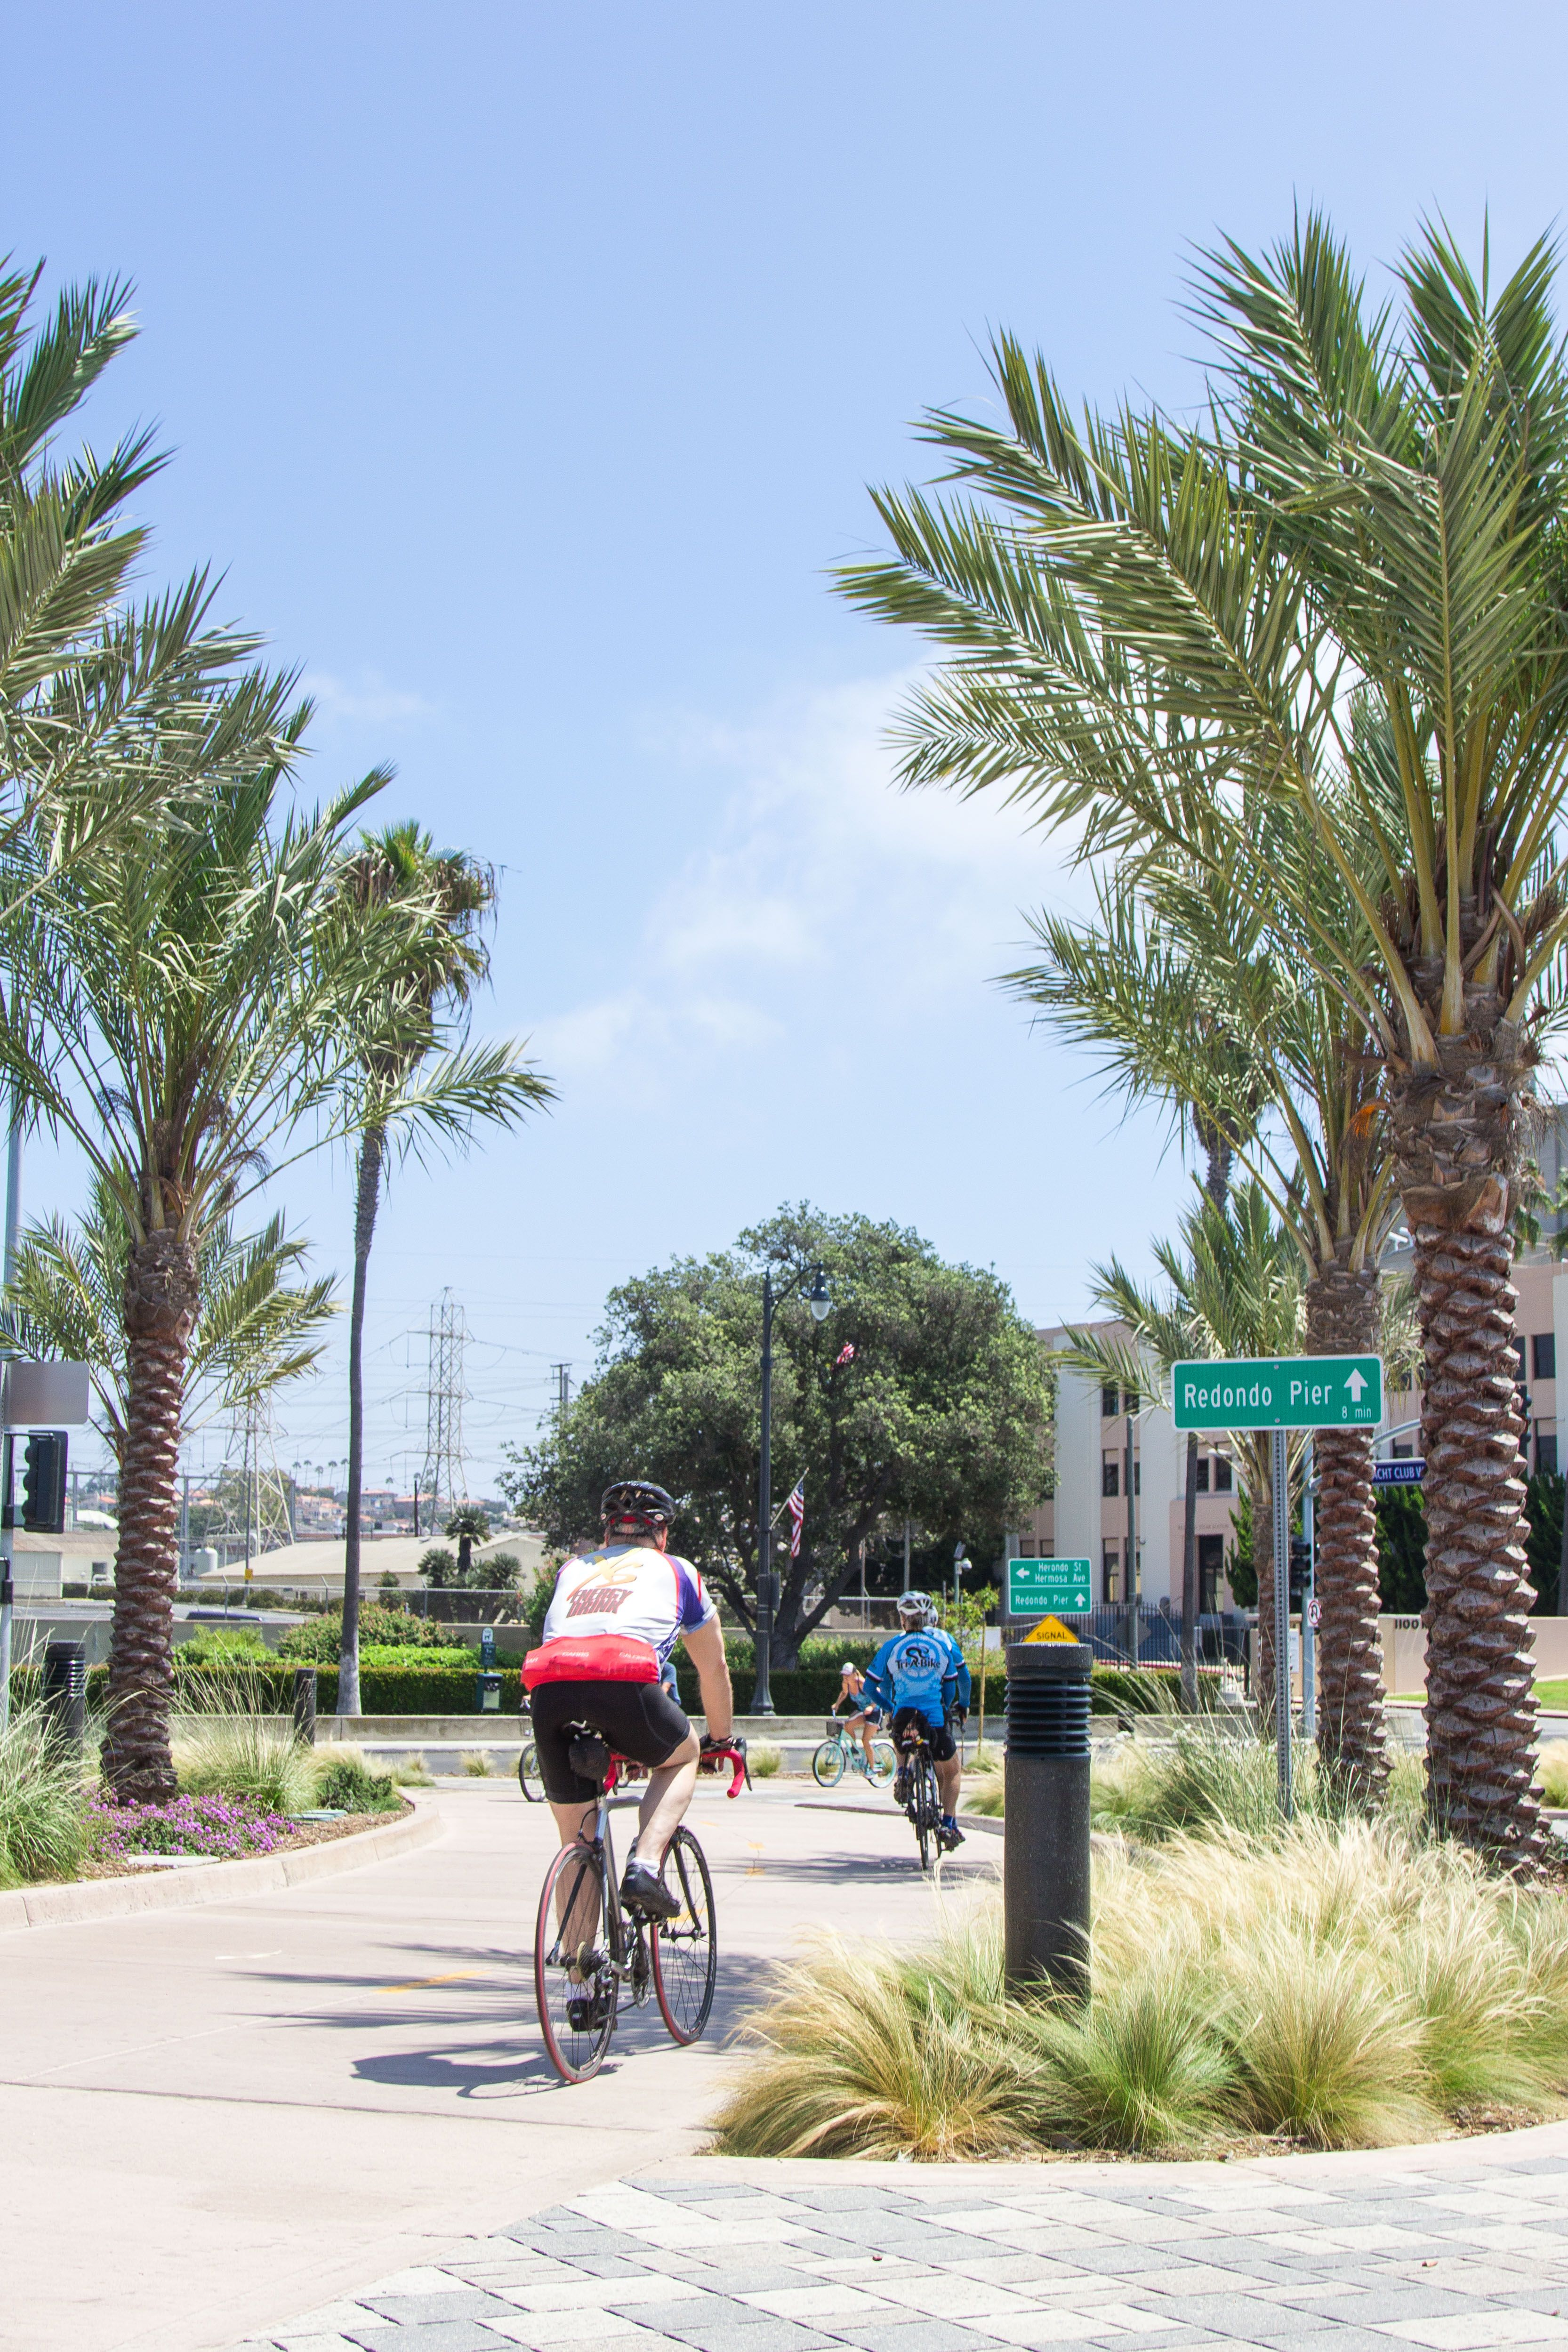 LA's Longest Bike Route runs right by the ocean. Redondo